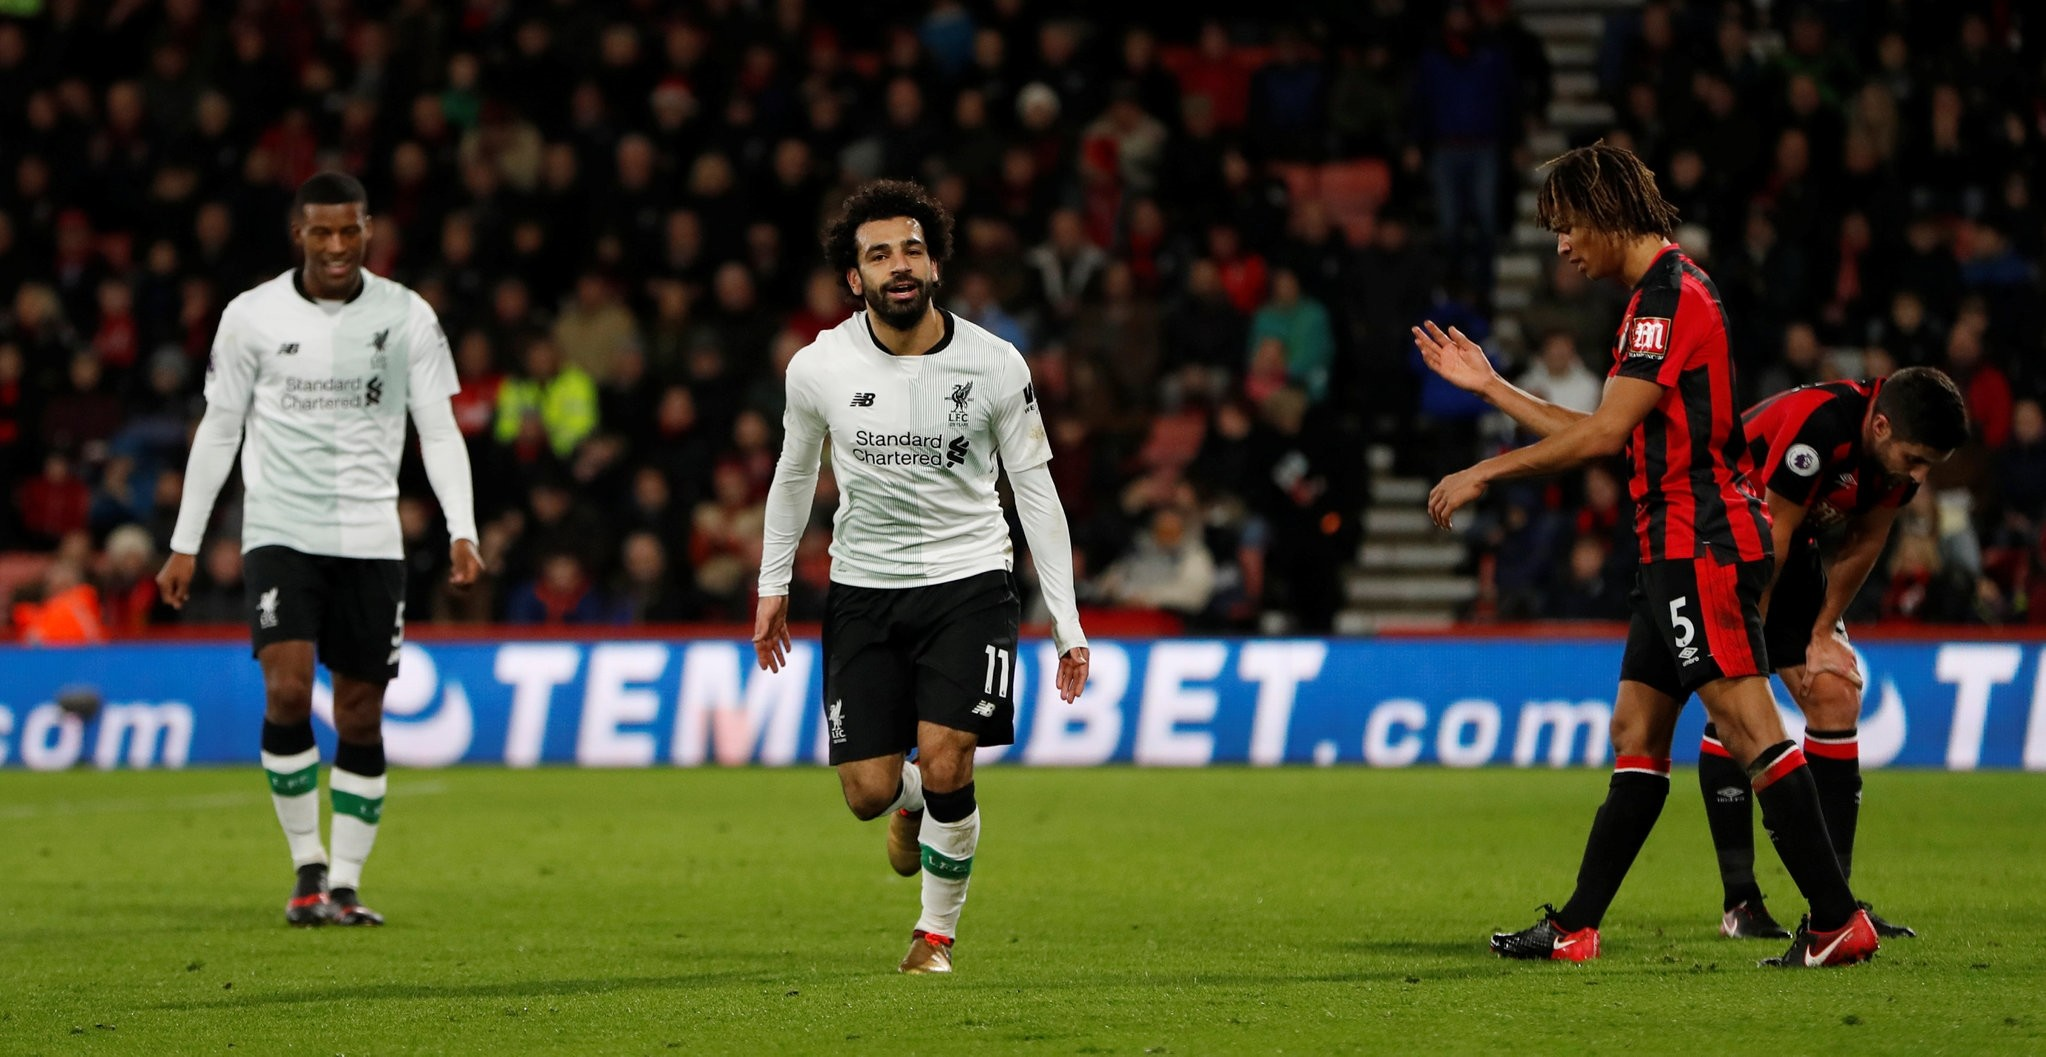 Liverpool's Mohamed Salah celebrates scoring their third goal. (Action Images via Reuters)